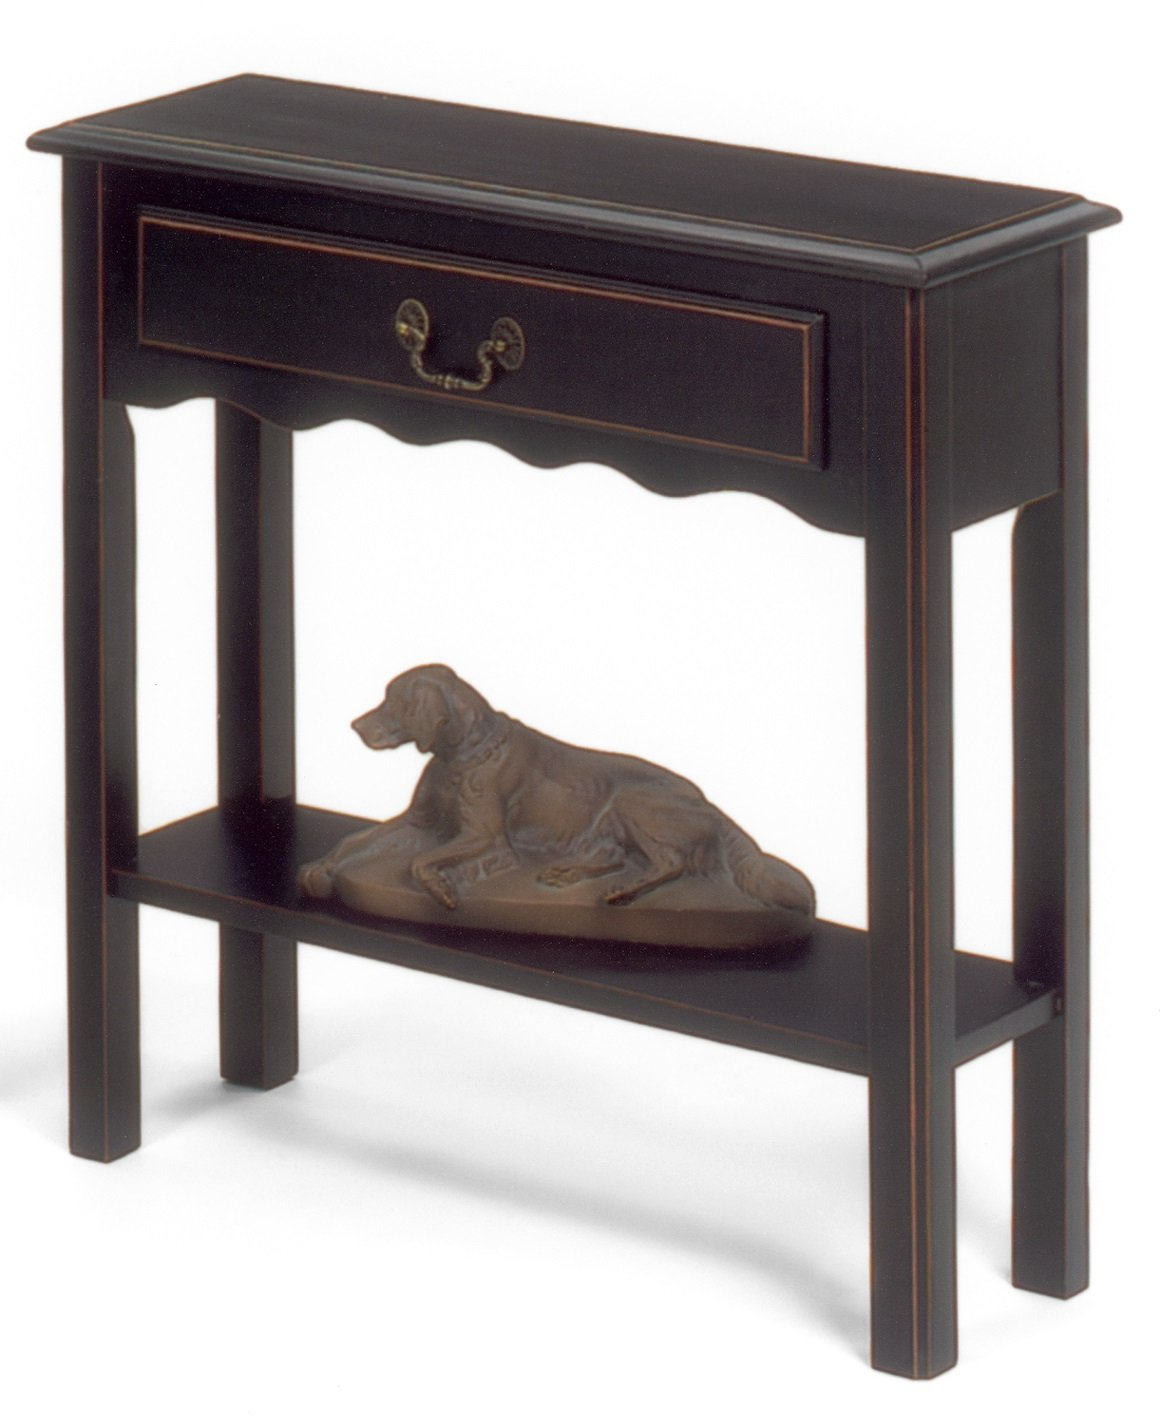 Heartwood Crossing 1900-21B Console Table, 28'' W x 10'' D x 28'' H, Black